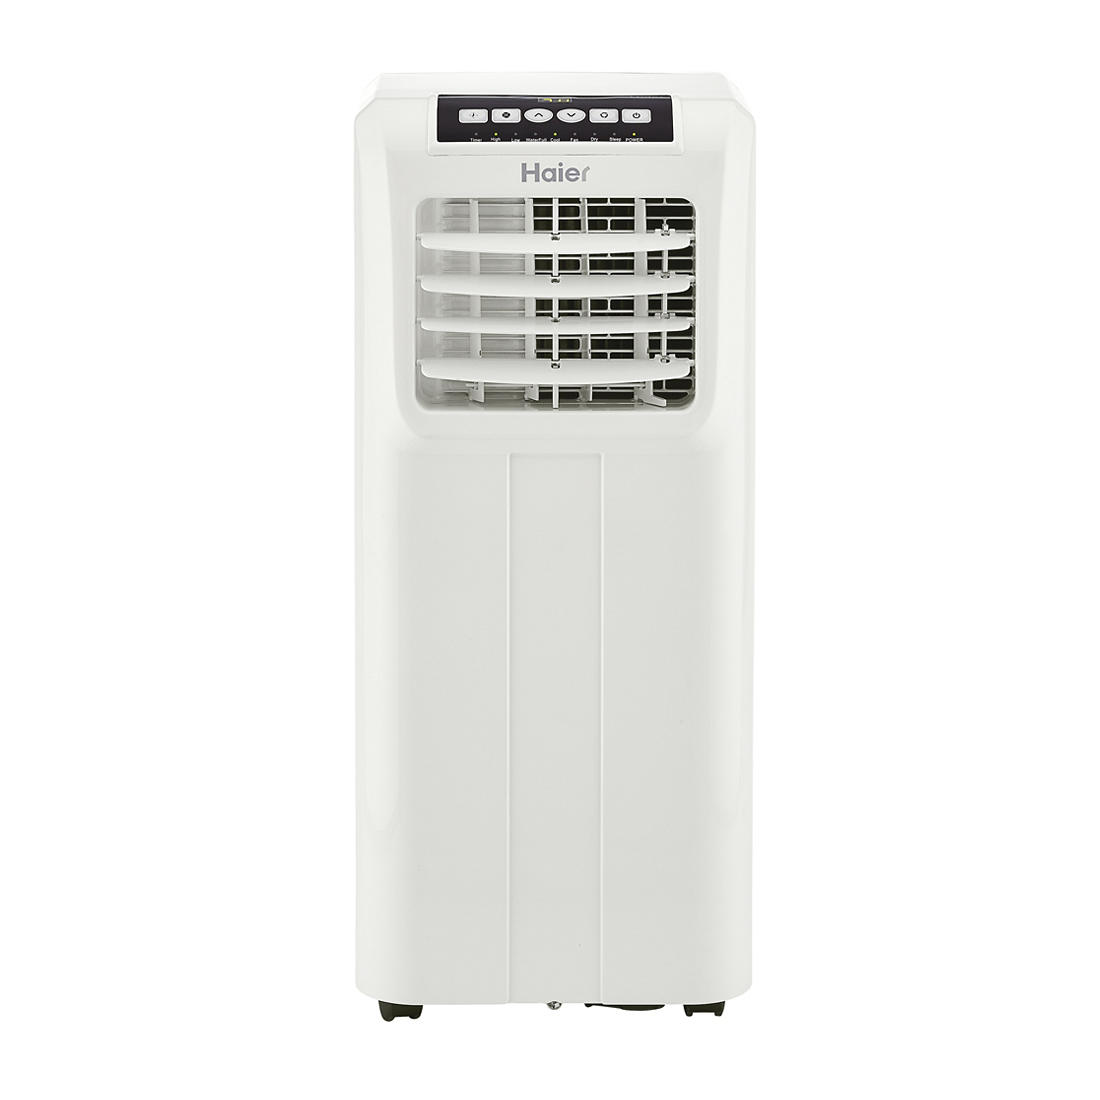 Haier 10,000-BTU Portable Air Conditioner - BJs WholeSale Club on haier appliance wiring diagrams, haier heat pump wiring diagrams, haier refrigerator wiring diagram,